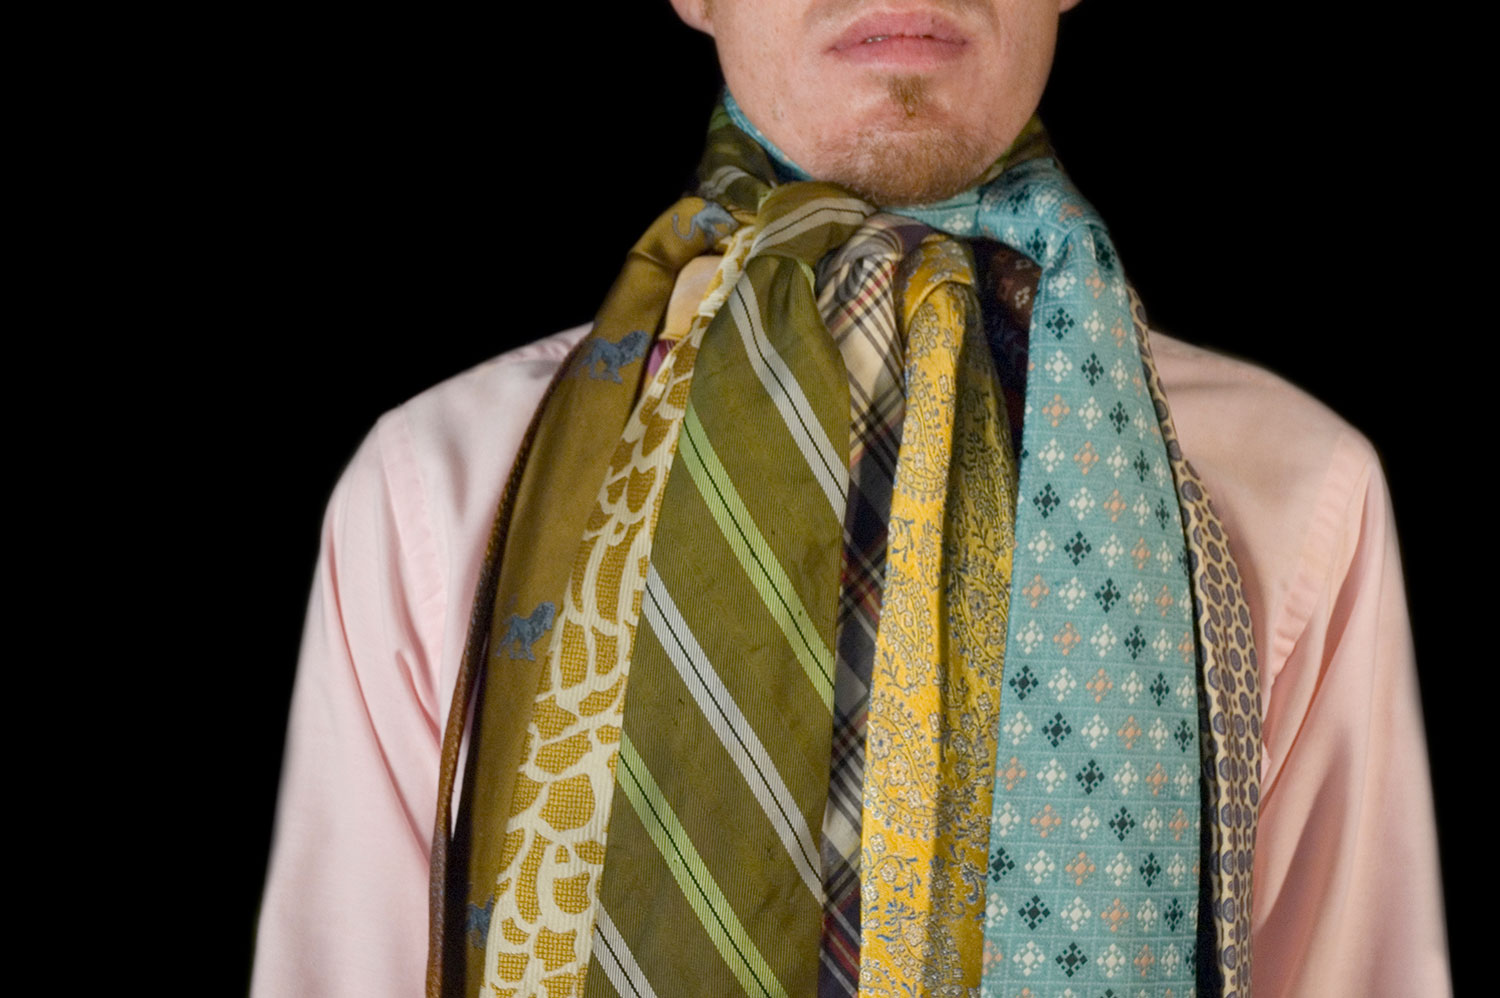 Formalism, 2006, color digital print, 20 x 16, showing 1 of 32<br><br>I tie 30 neckties around my neck according to the formal structure of ROY G BIV.